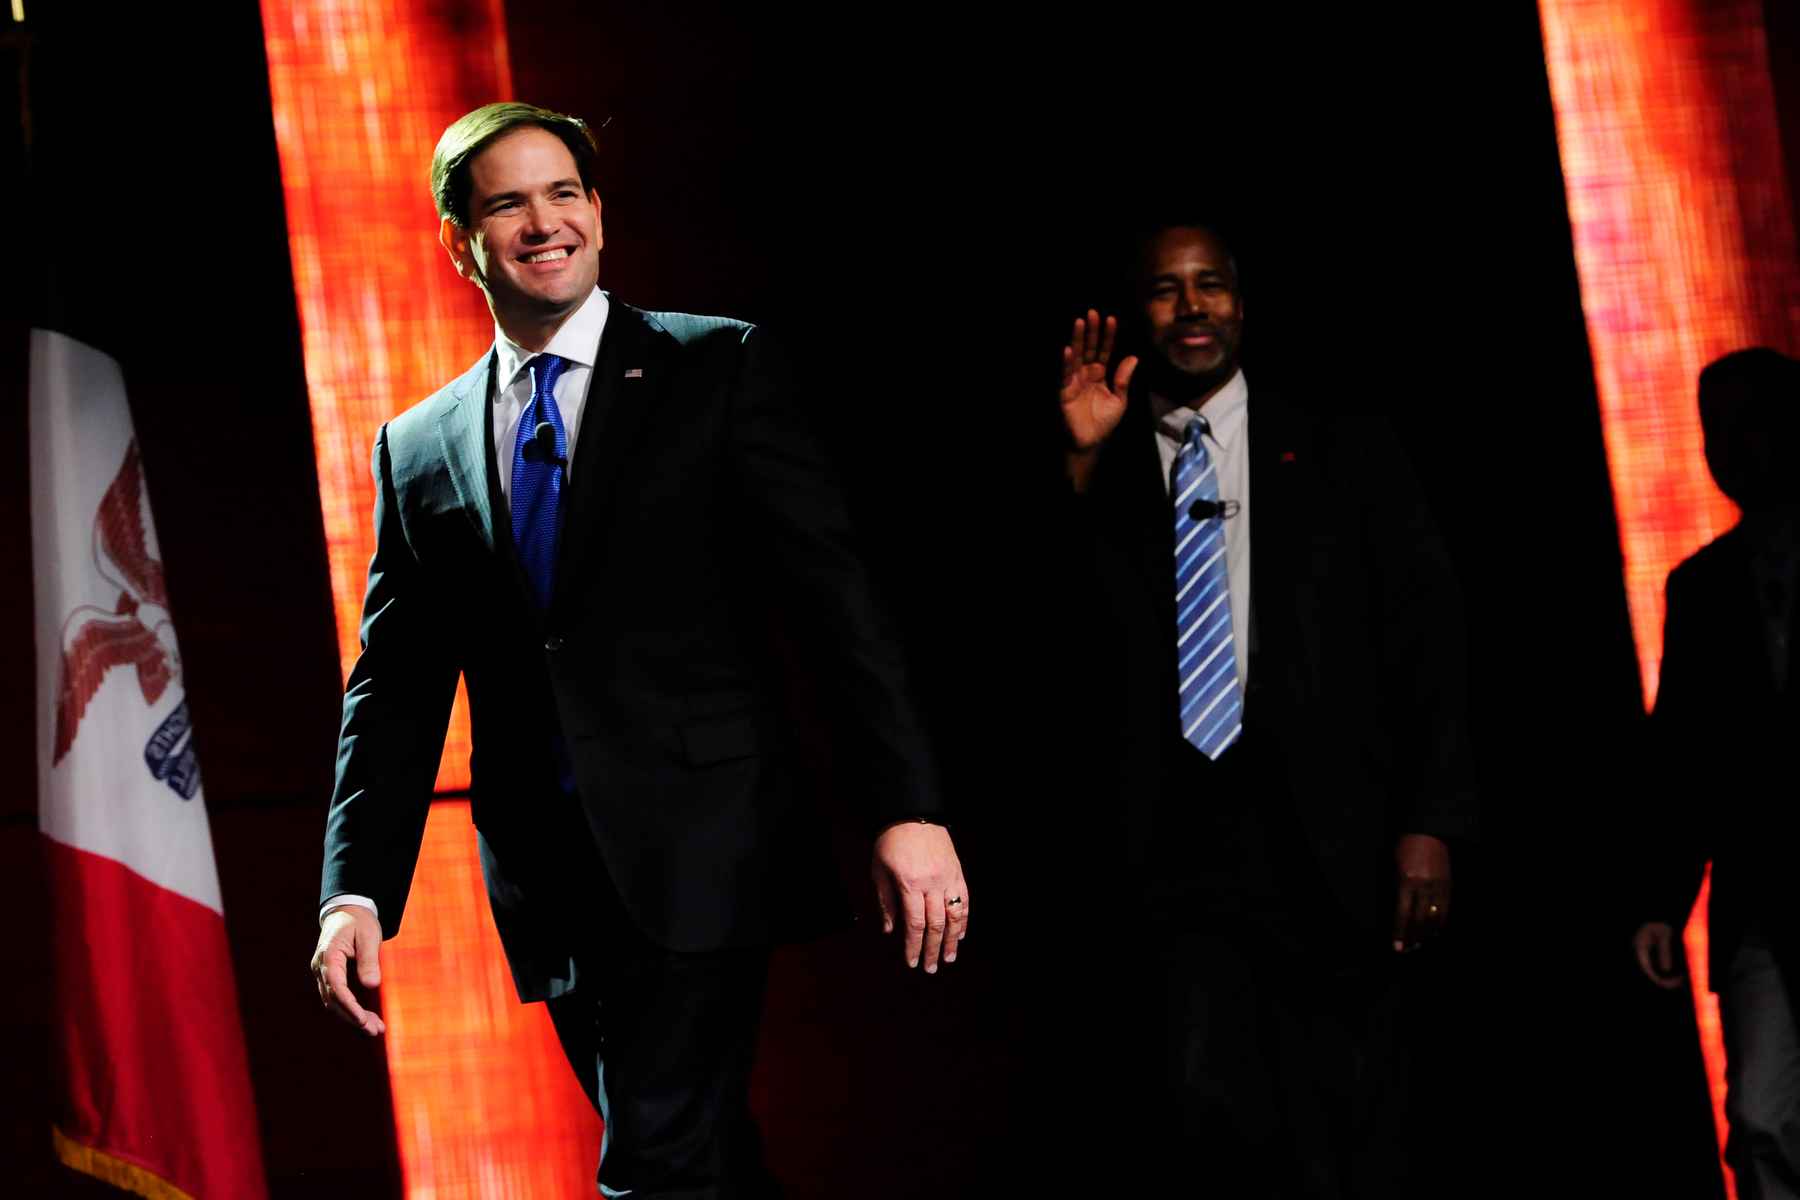 Republican U.S. presidential candidate Marco Rubio takes the stage at the Presidential Family Forum in Des Moines, Iowa November 20, 2015.REUTERS/Mark Kauzlarich